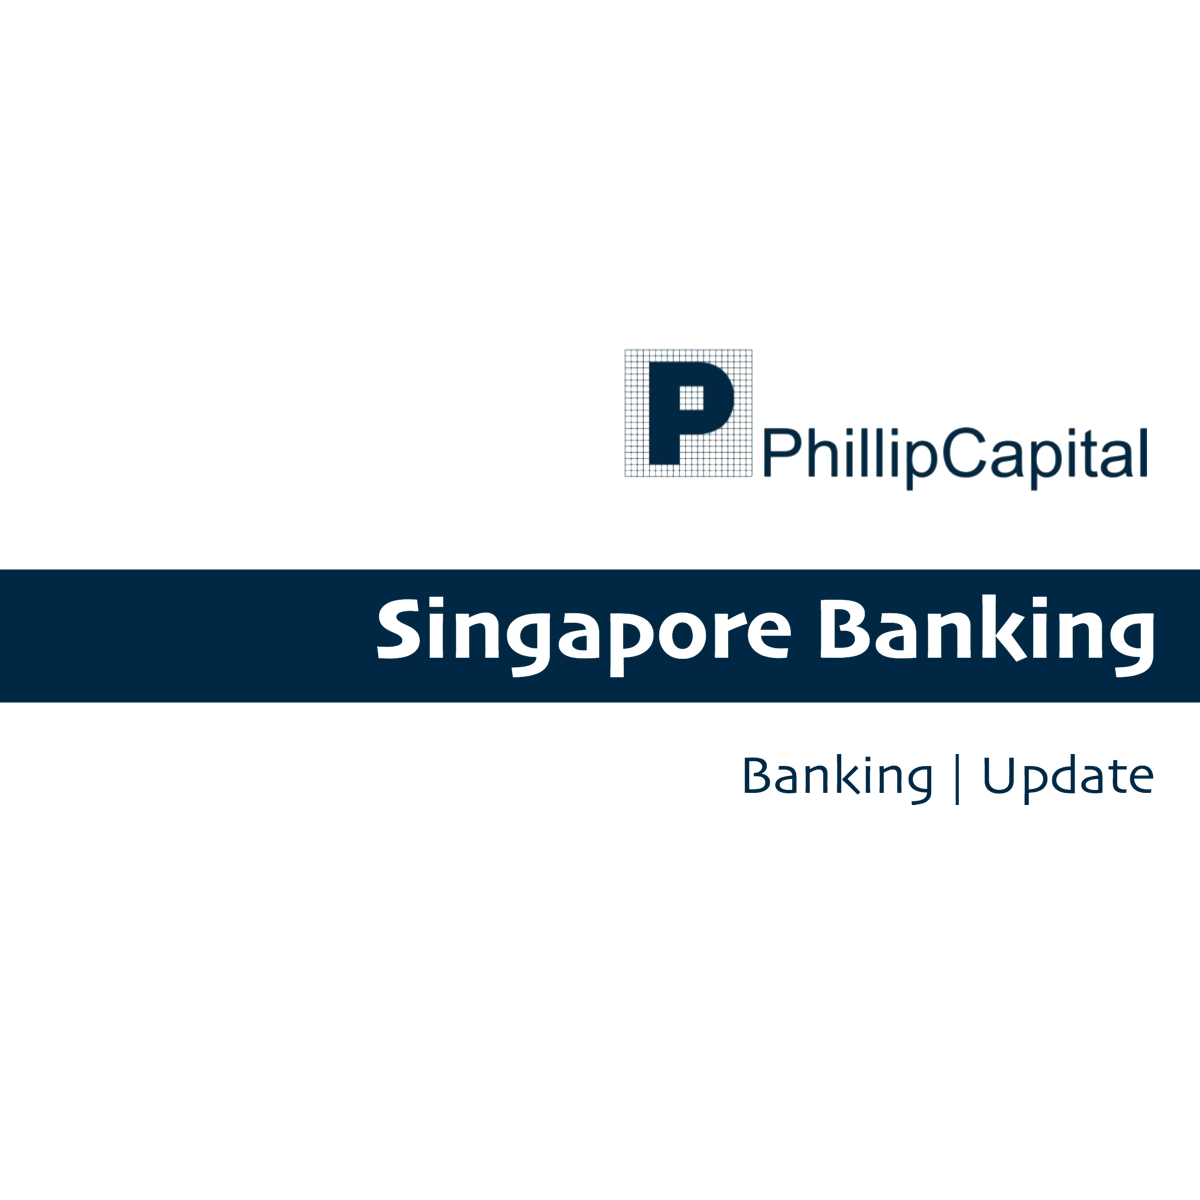 Singapore Banking And Finance - Phillip Securities 2017-10-20: 3Q17 Earnings Preview